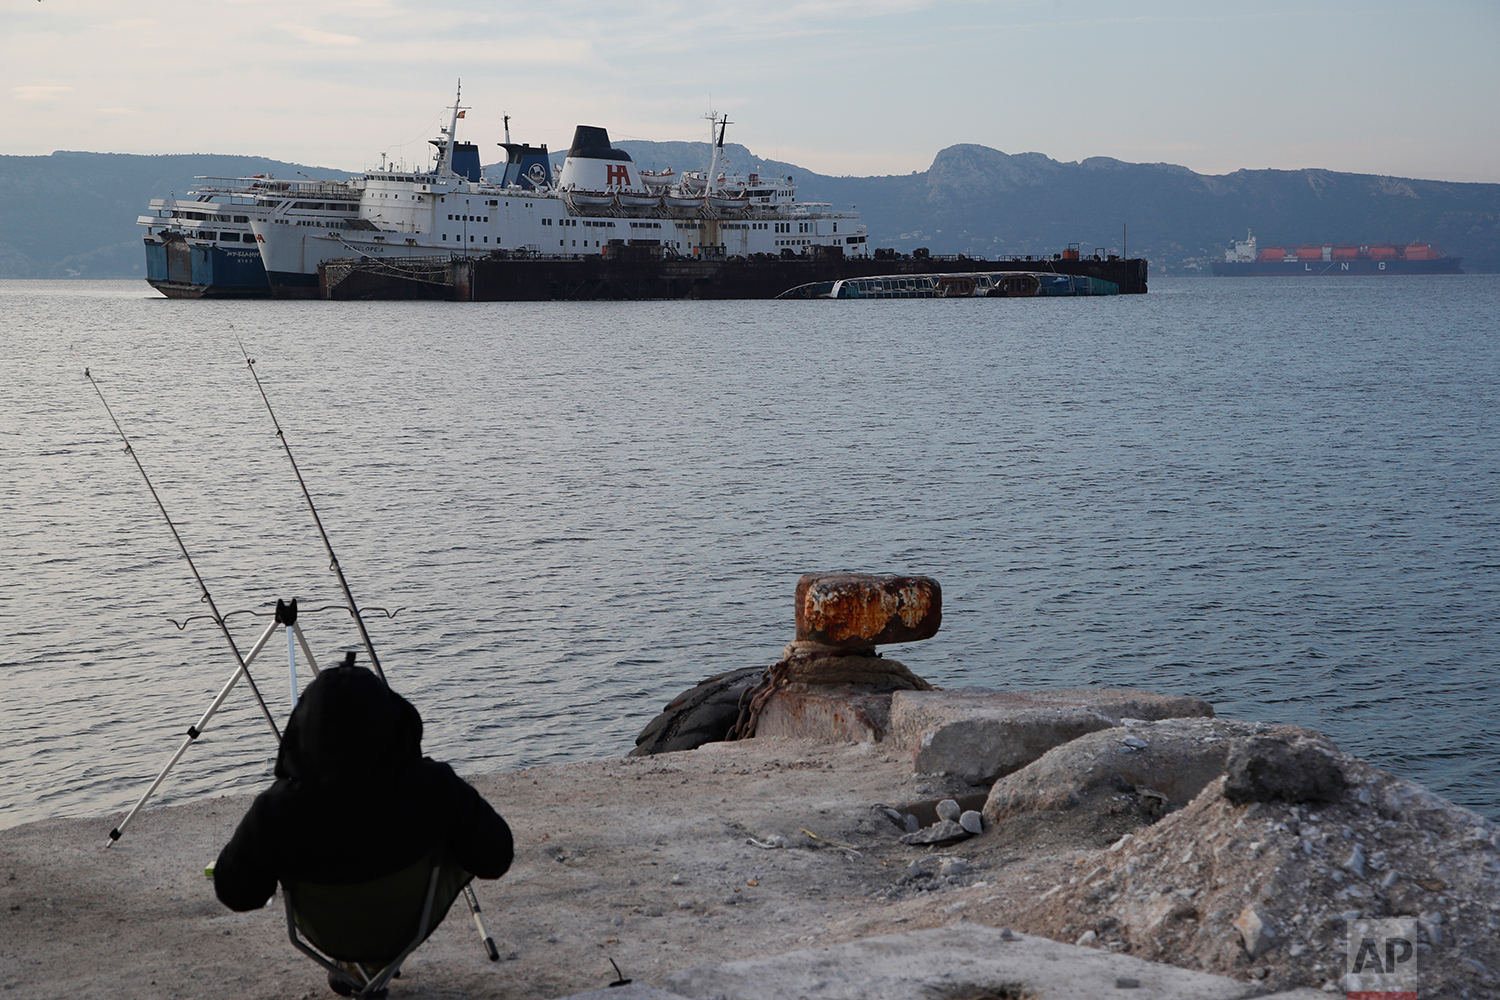 In this Friday, Dec. 4, 2018 photo, a man fishes as a half sunken and abandoned ships are moored in the Gulf of Elefsina, west of Athens. (AP Photo/Thanassis Stavrakis)